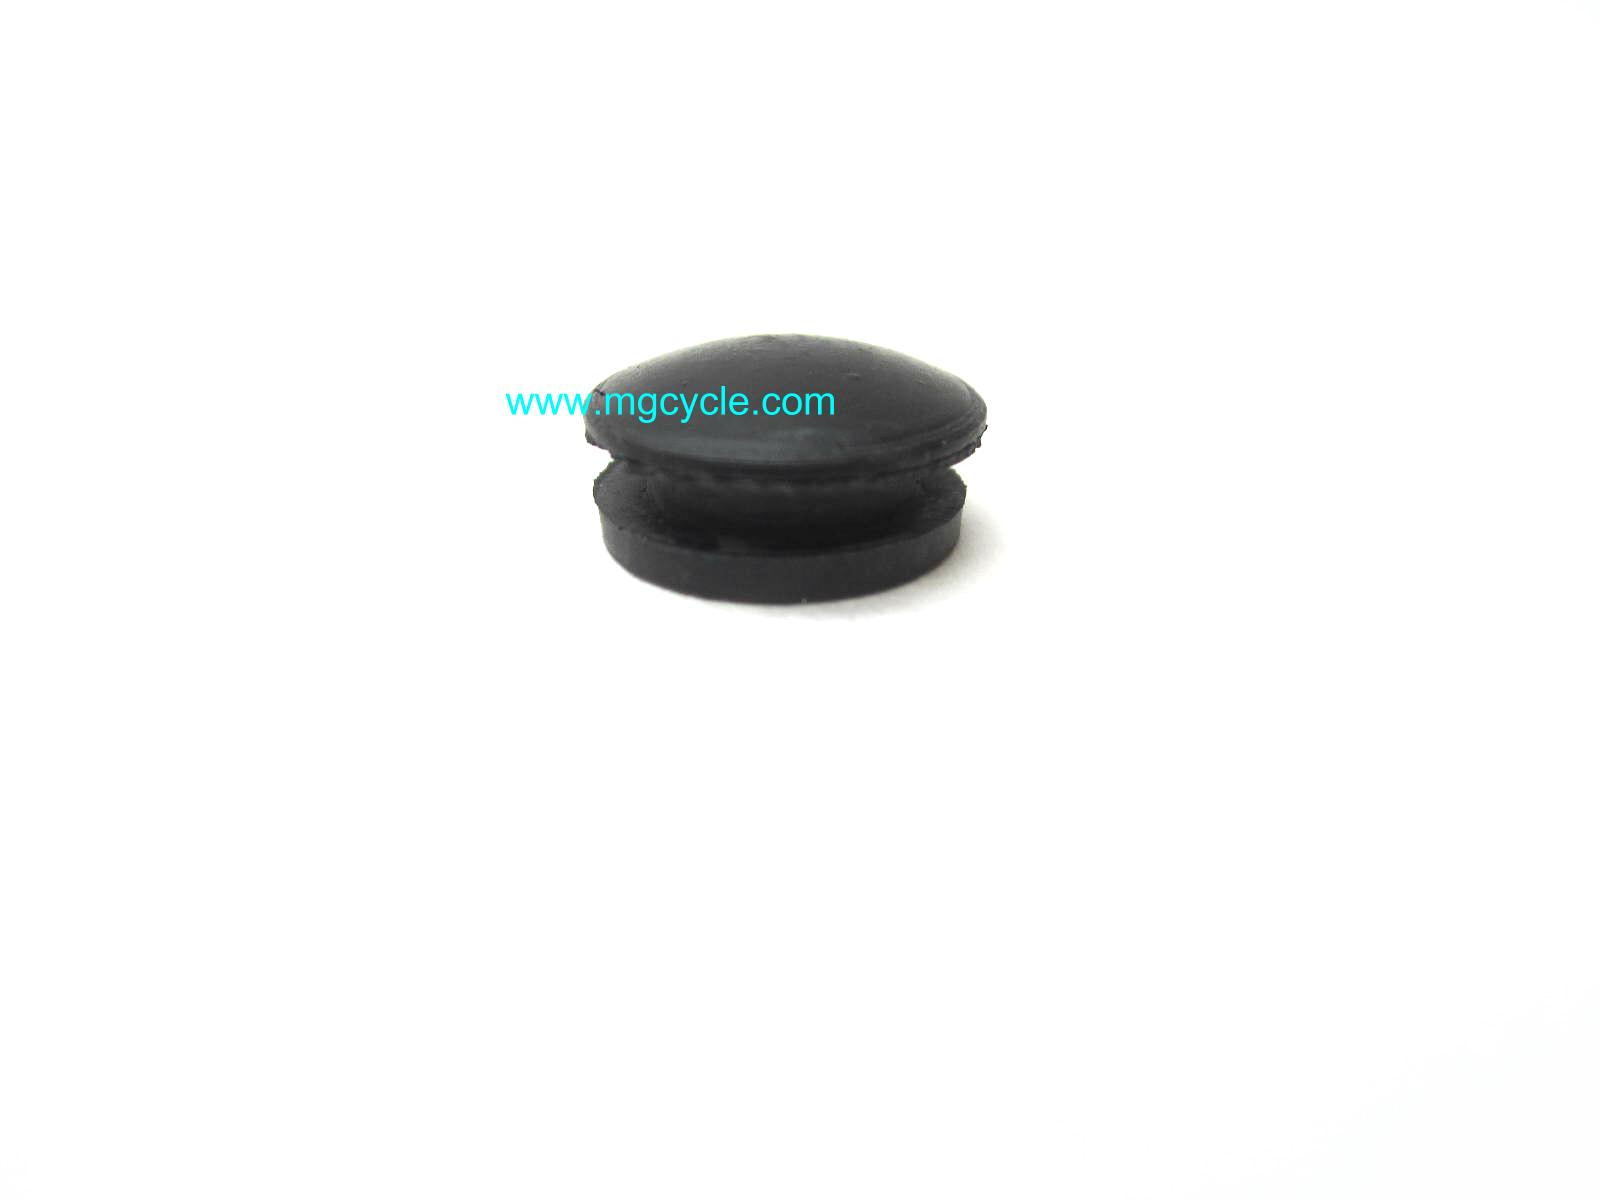 rubber plug for swingarm pivot cap, many models